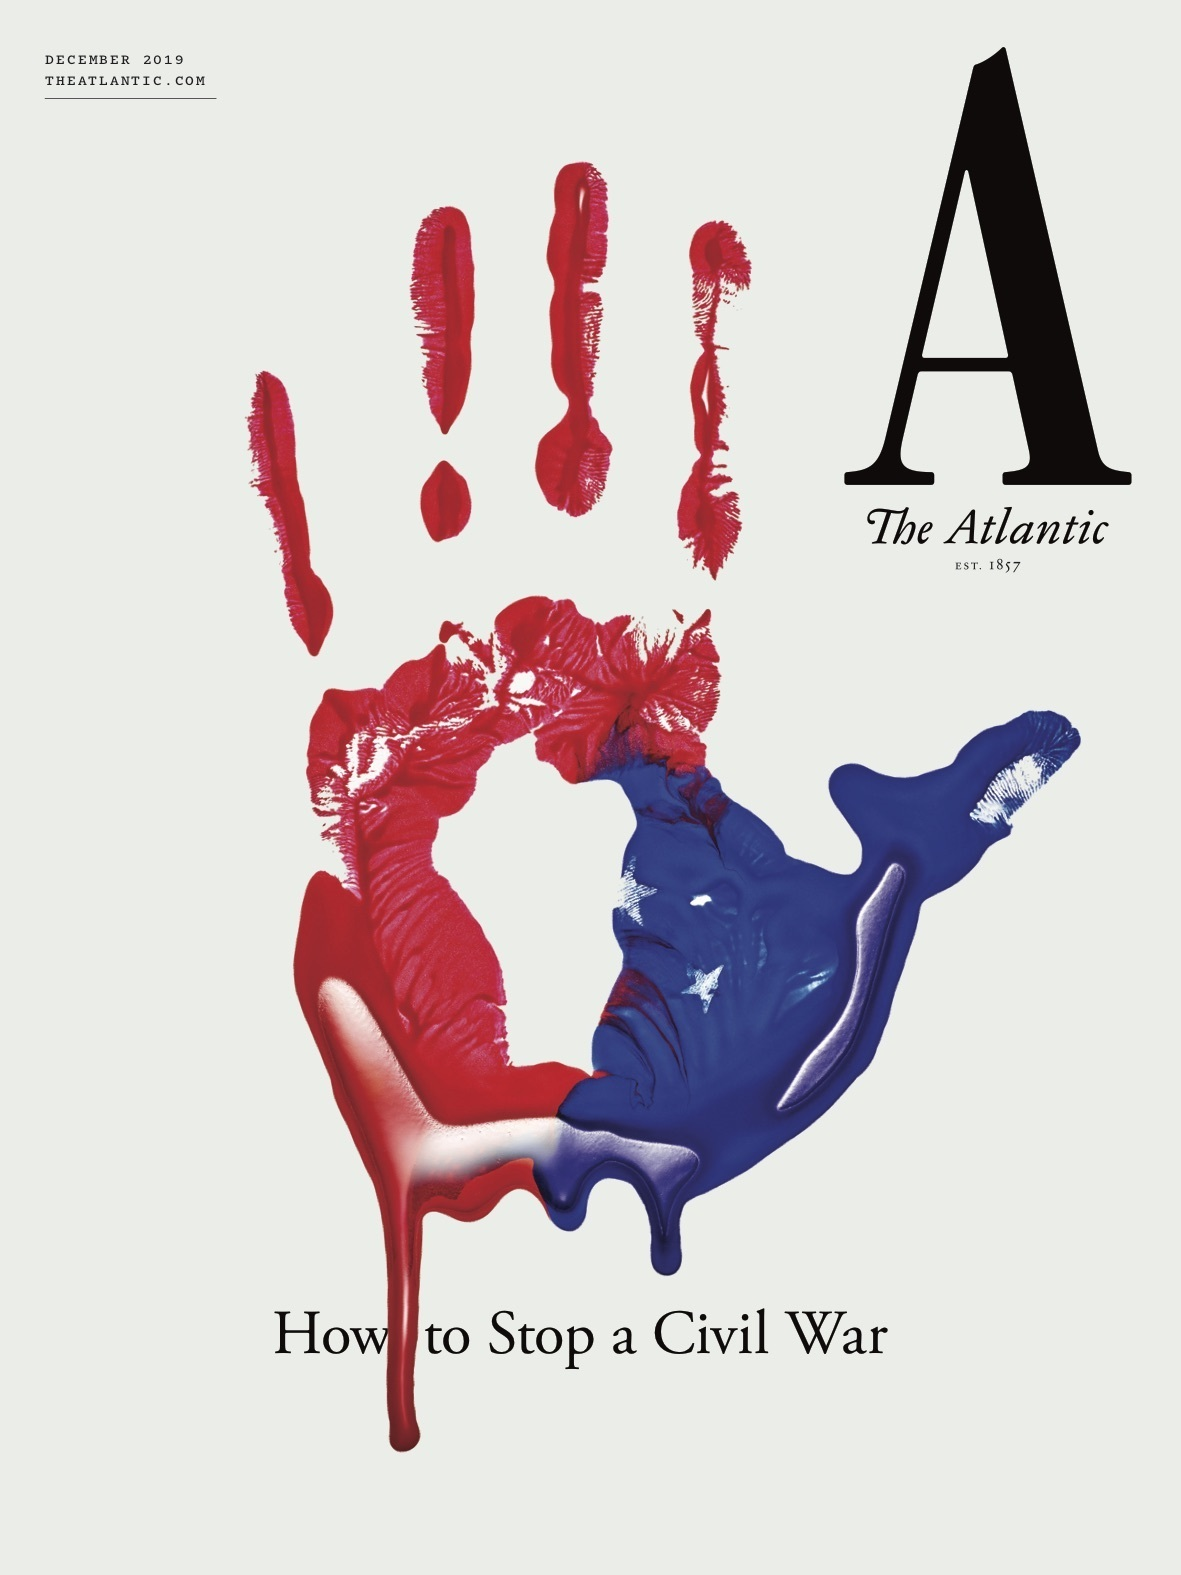 Provocative Atlantic asks how civil war can be avoided